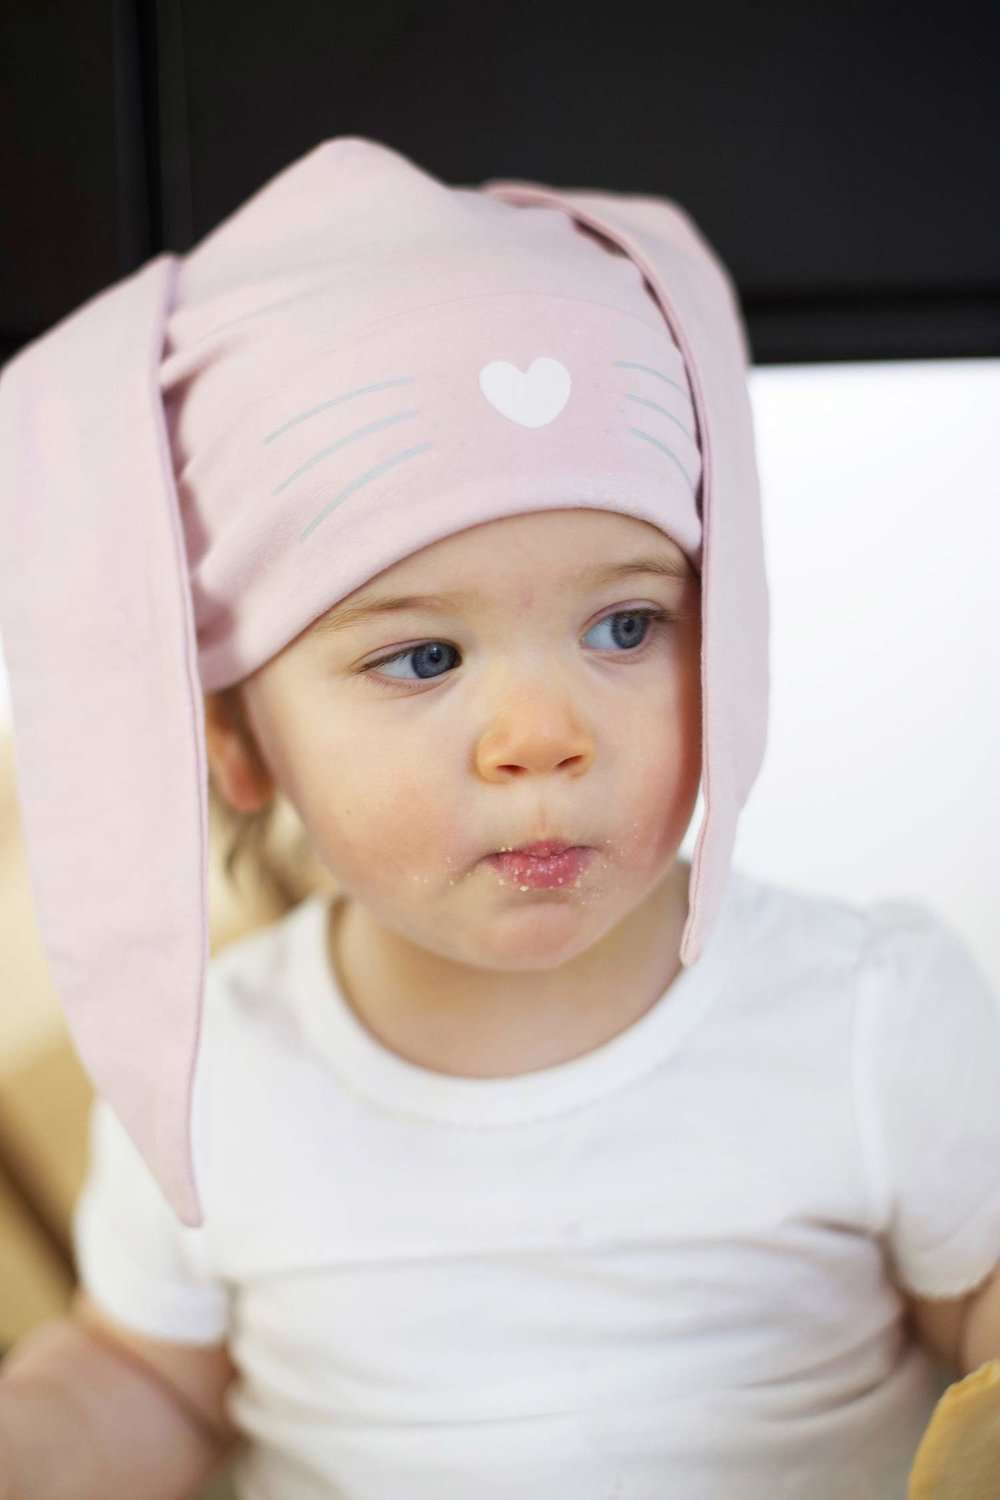 spring bake baby or toddler girl hat with ears